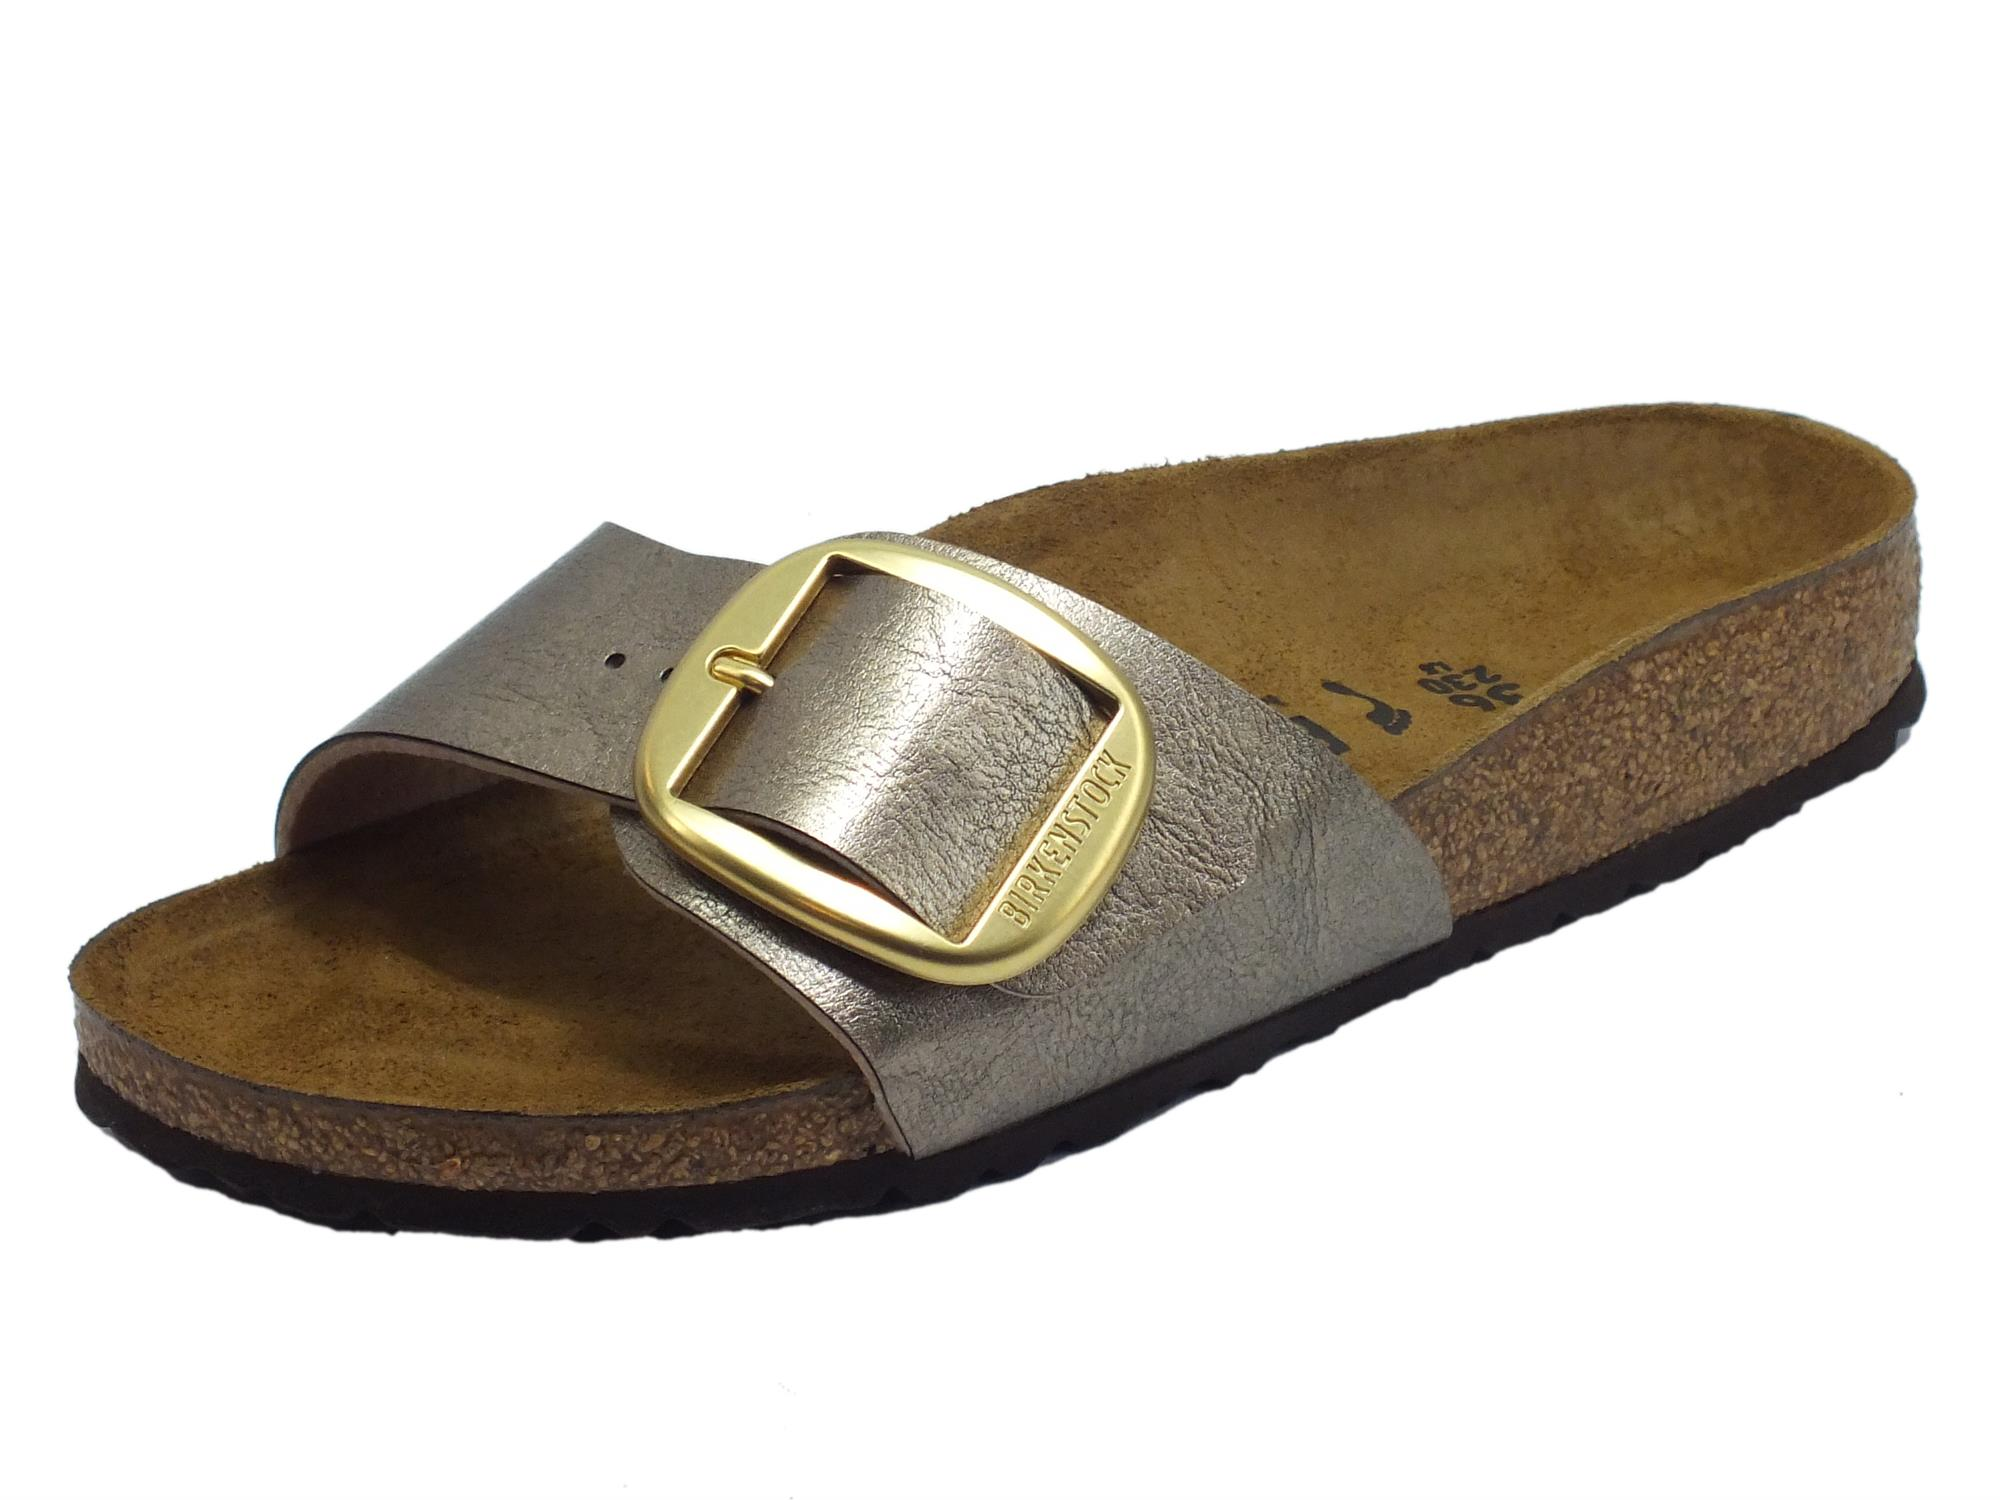 Birkenstock 1016237 Madrid Big Buckle Graceful Taupe Sandalo per Donna ecopelle sottopiede pelle